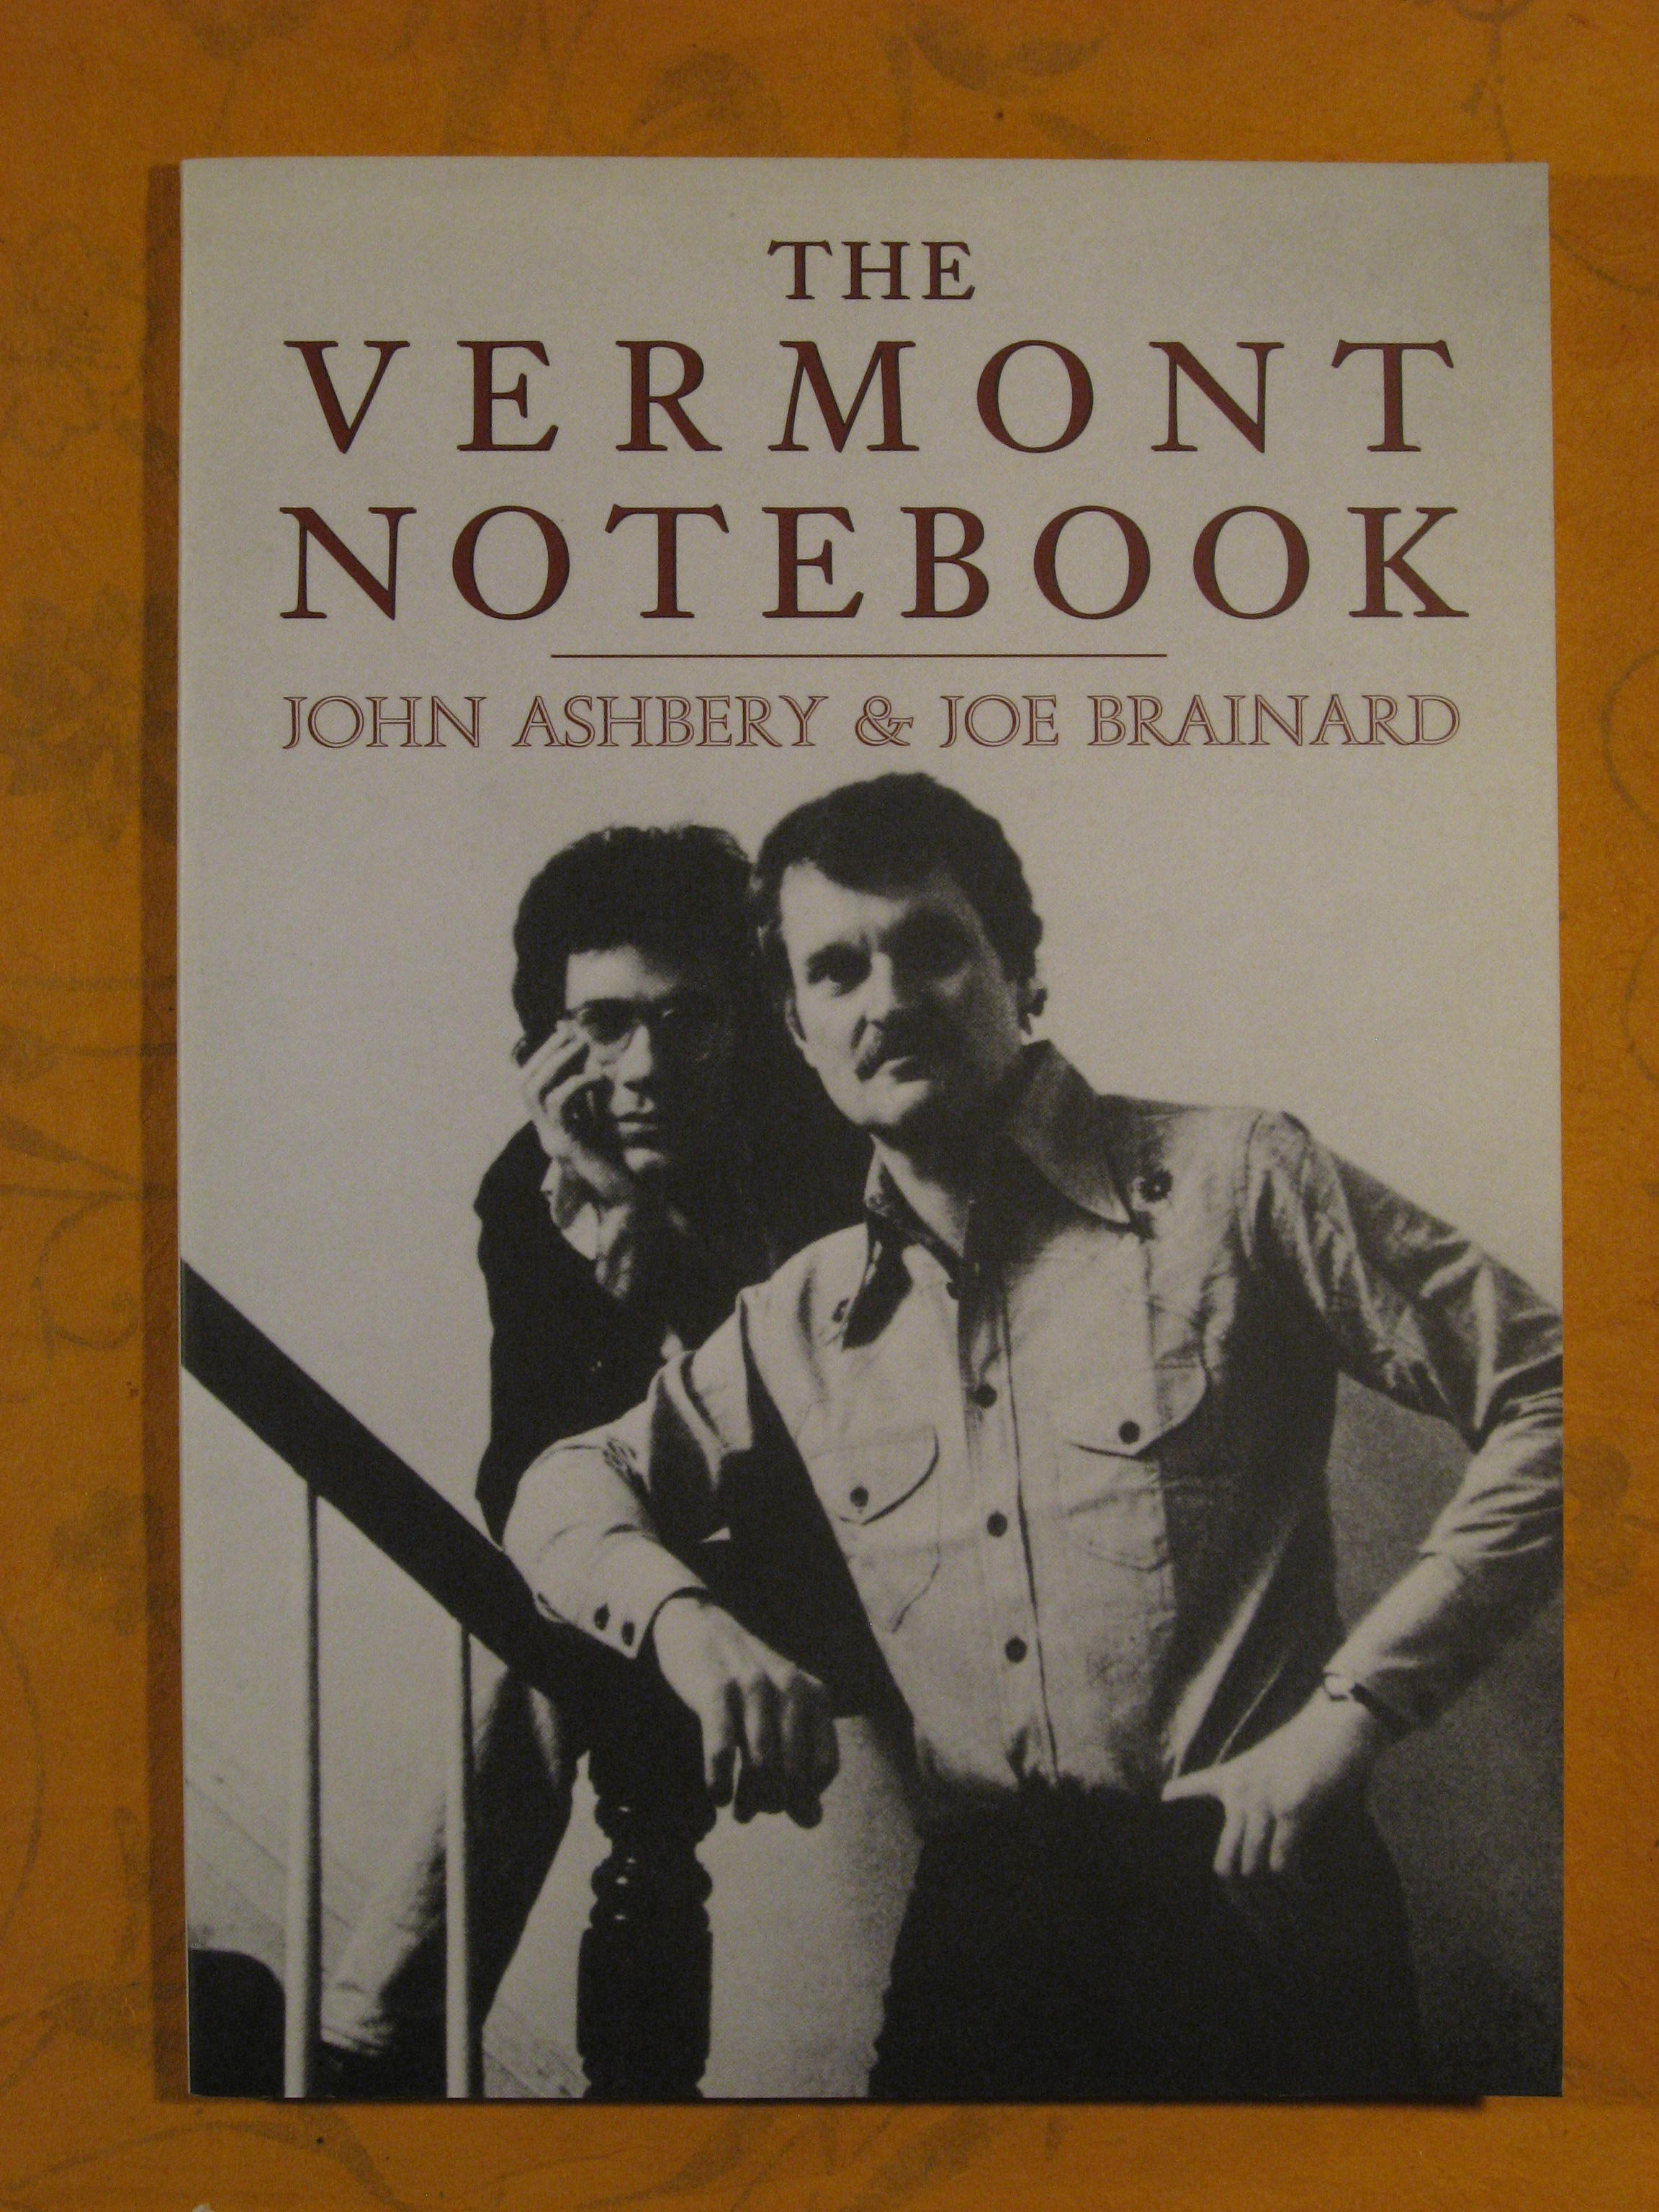 Image for The Vermont Notebook: text by John Ashberry & Art by Joe Brainard